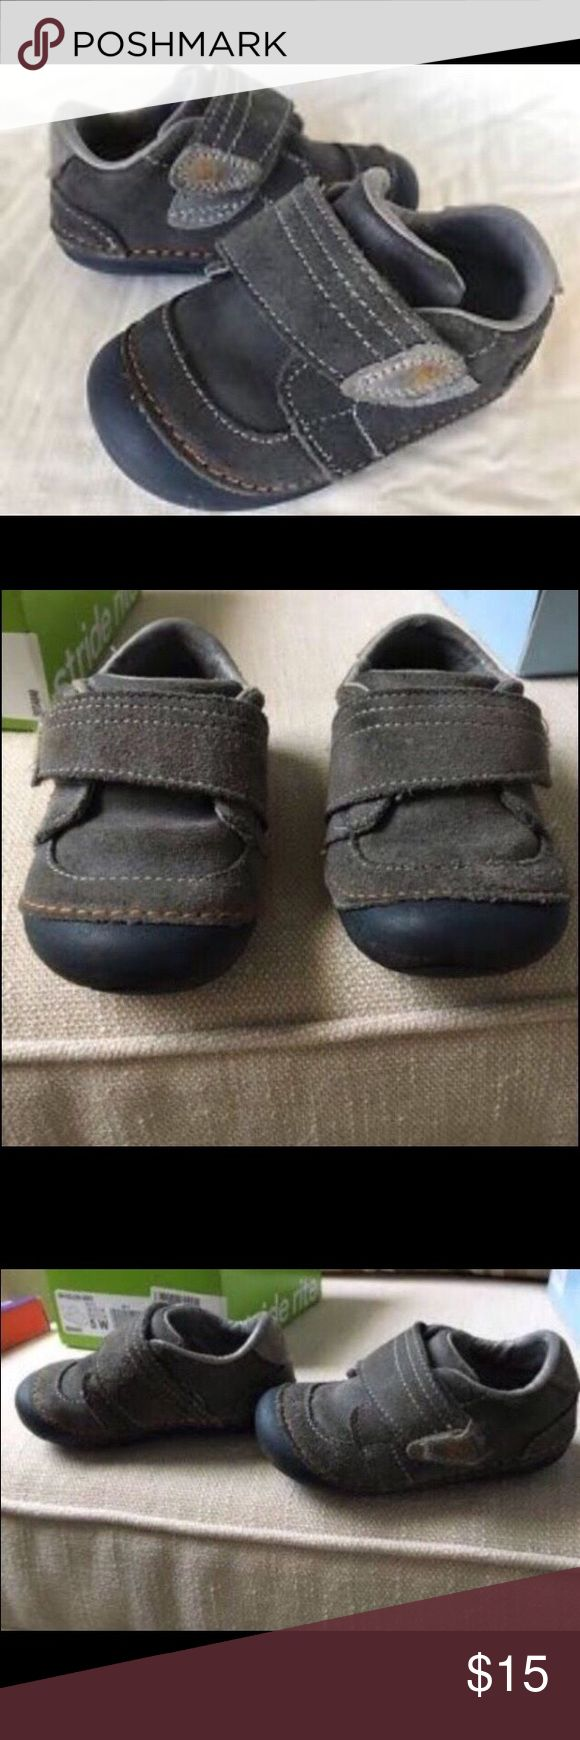 """Stride Rite Toddler Boy 4.5 Extra Wide Shoes Size 4.5 Extra Wide. Very Gently Used. Excellent Condition. Grey with Velcro strap. Stride Rite """"Kellen"""" Shoe. Stride Rite Shoes Baby & Walker"""